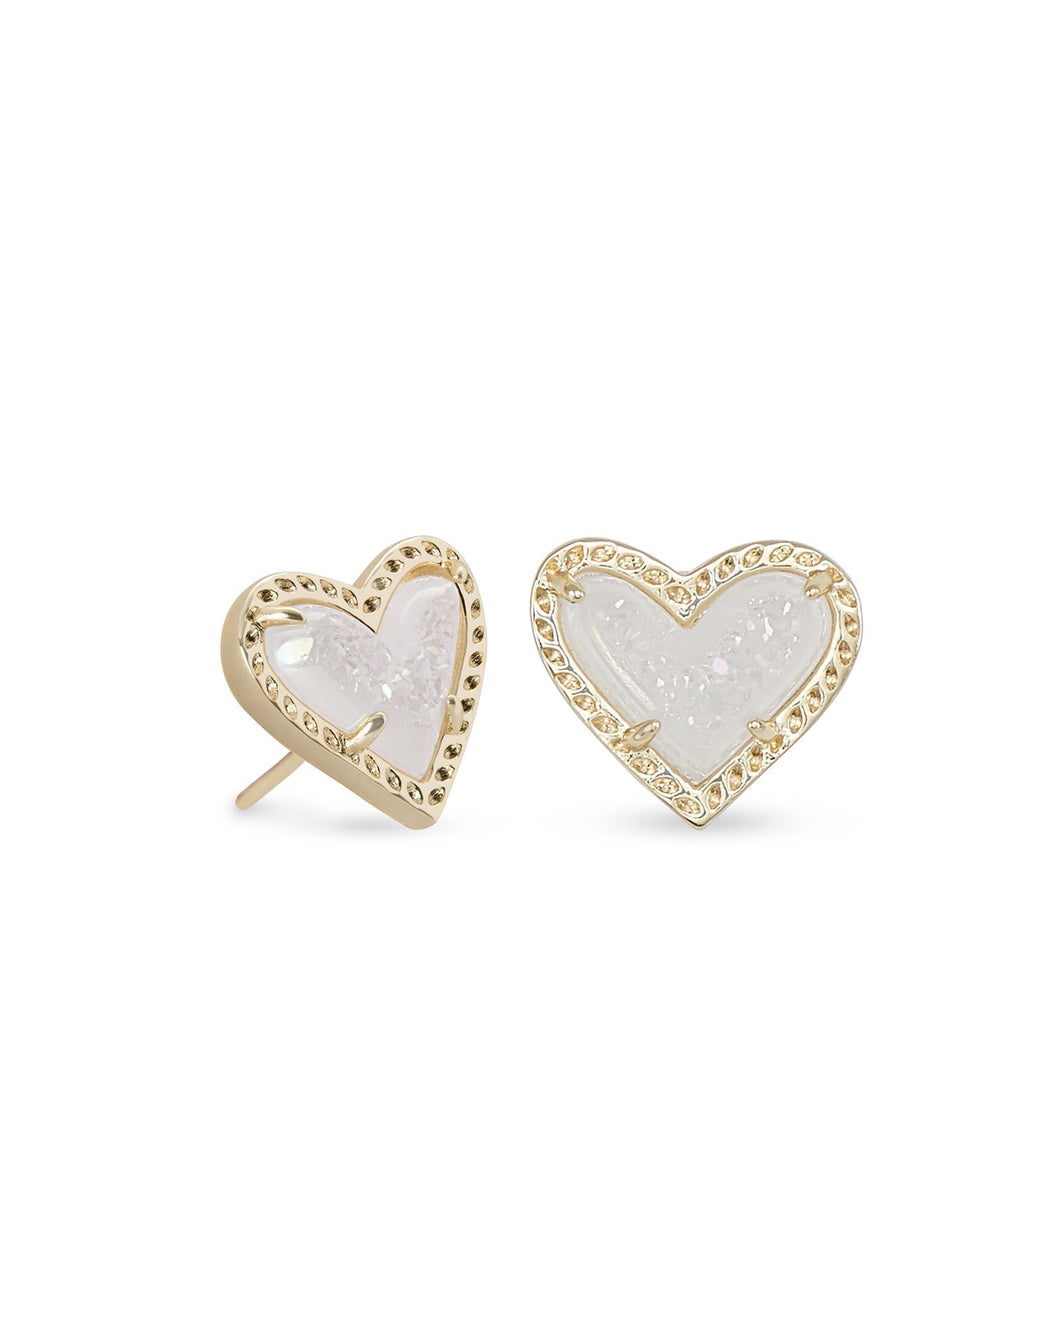 Ari Gold Heart Stud Earrings-Iridescent Drusy